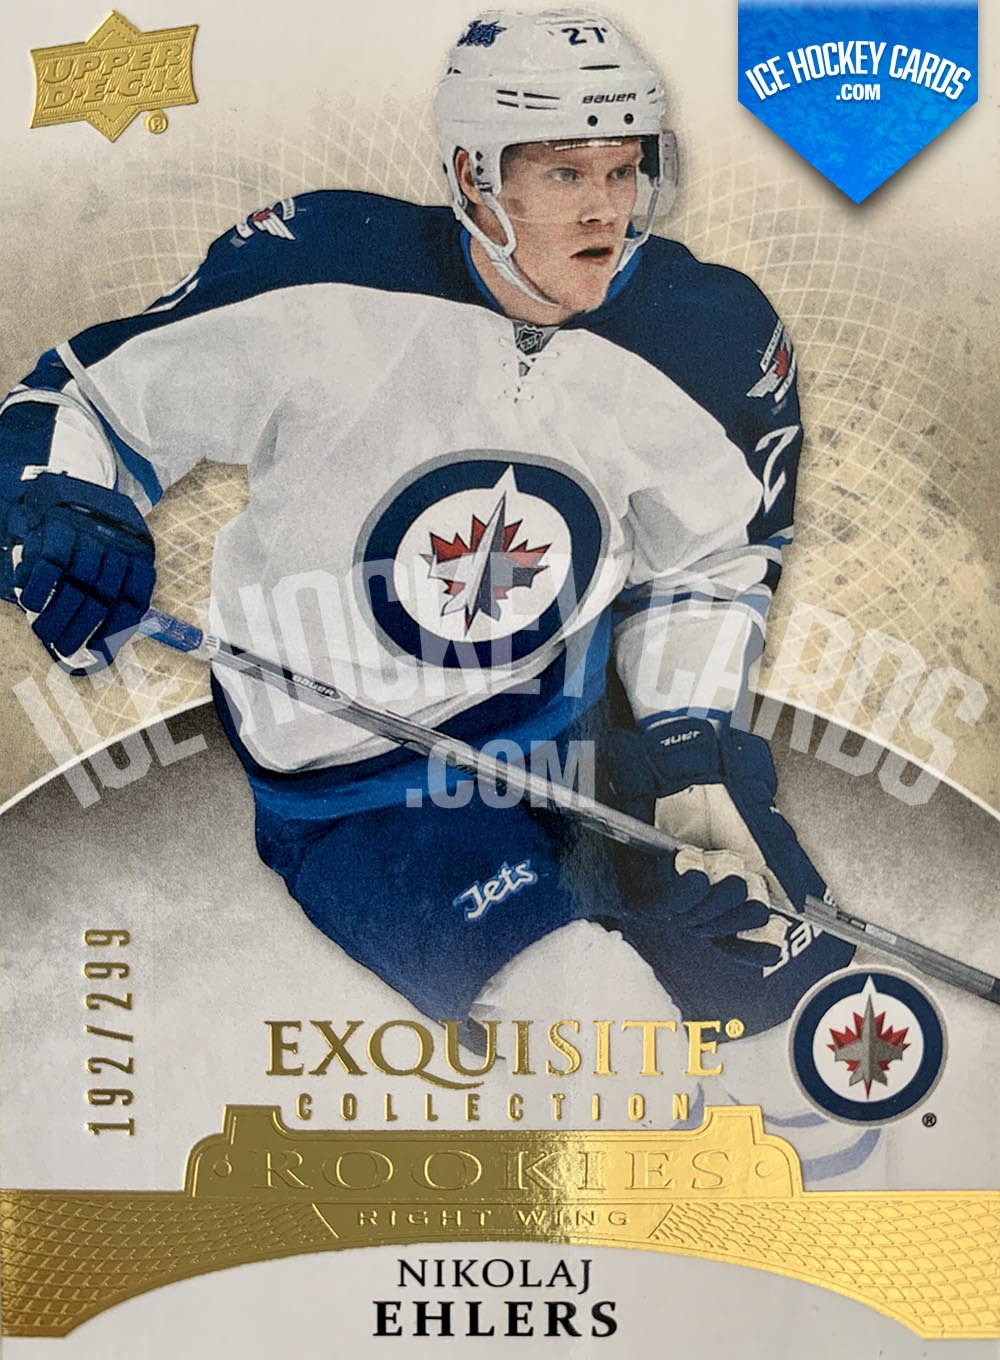 Upper Deck - Exquisite Collection 2015-16 - Nikolaj Ehlers Exquisite Collection Rookies Card